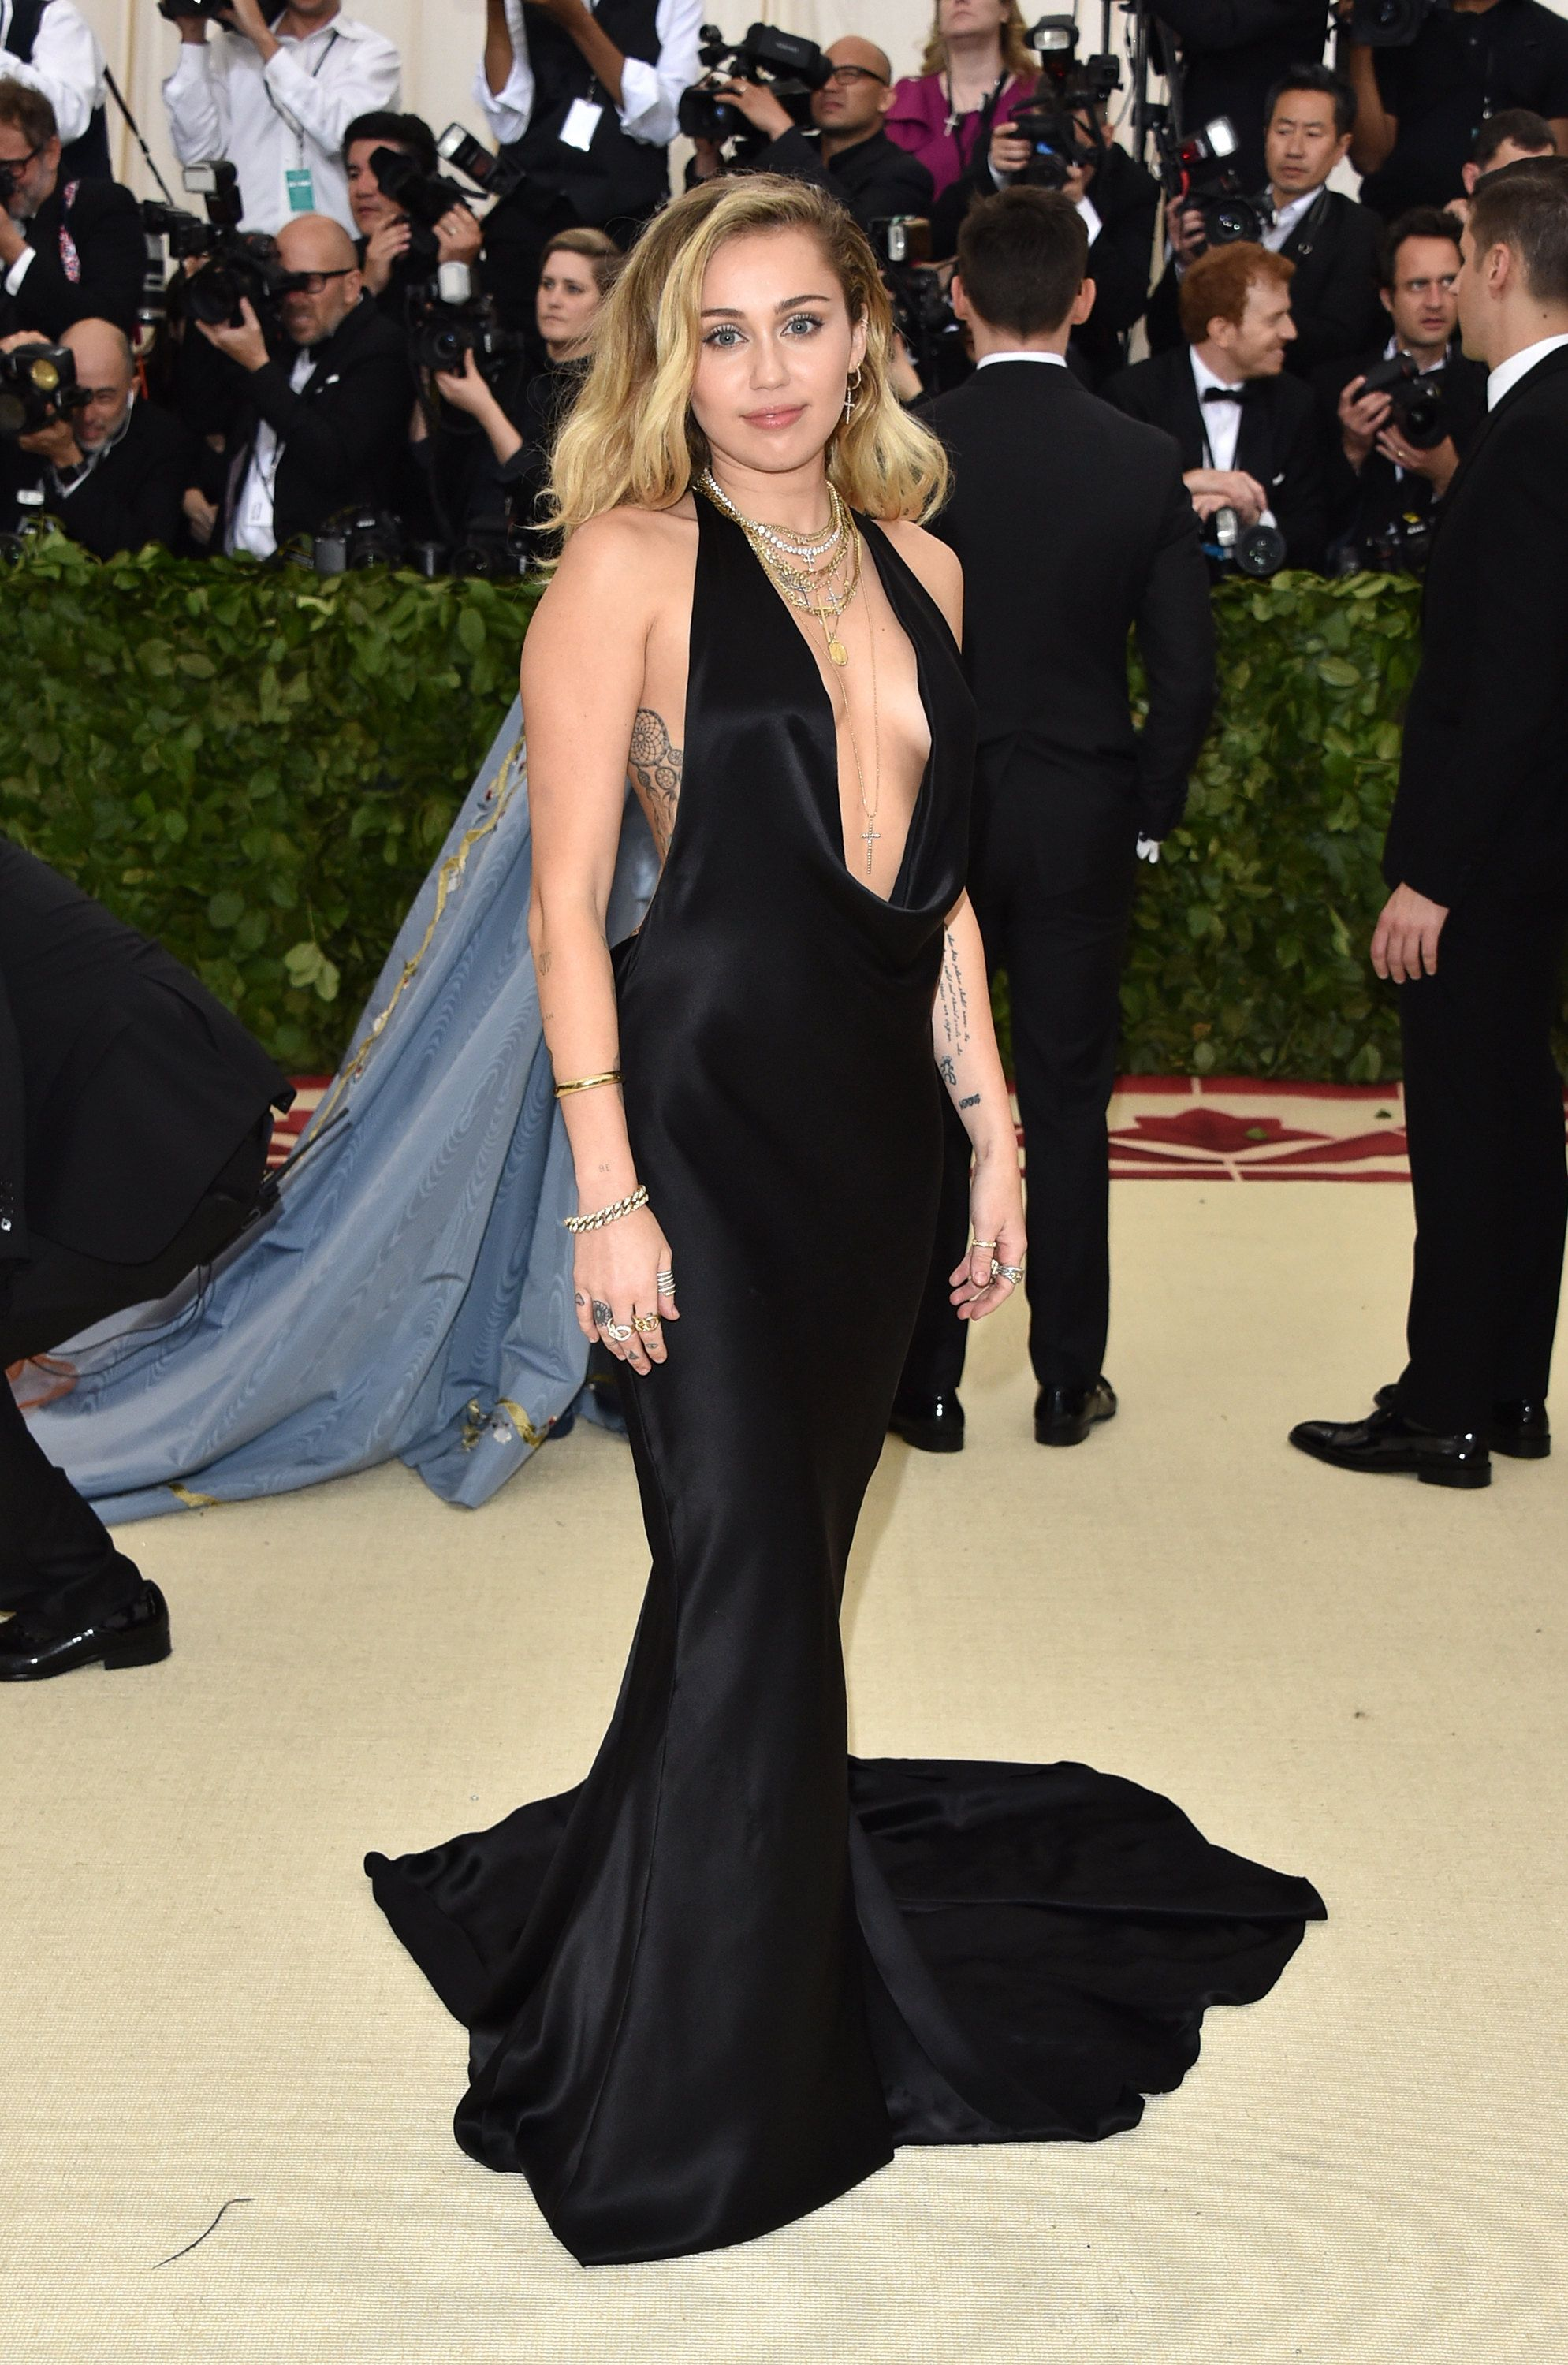 Miley Cyrus in a Stella McCartney gown t the MET Gala \